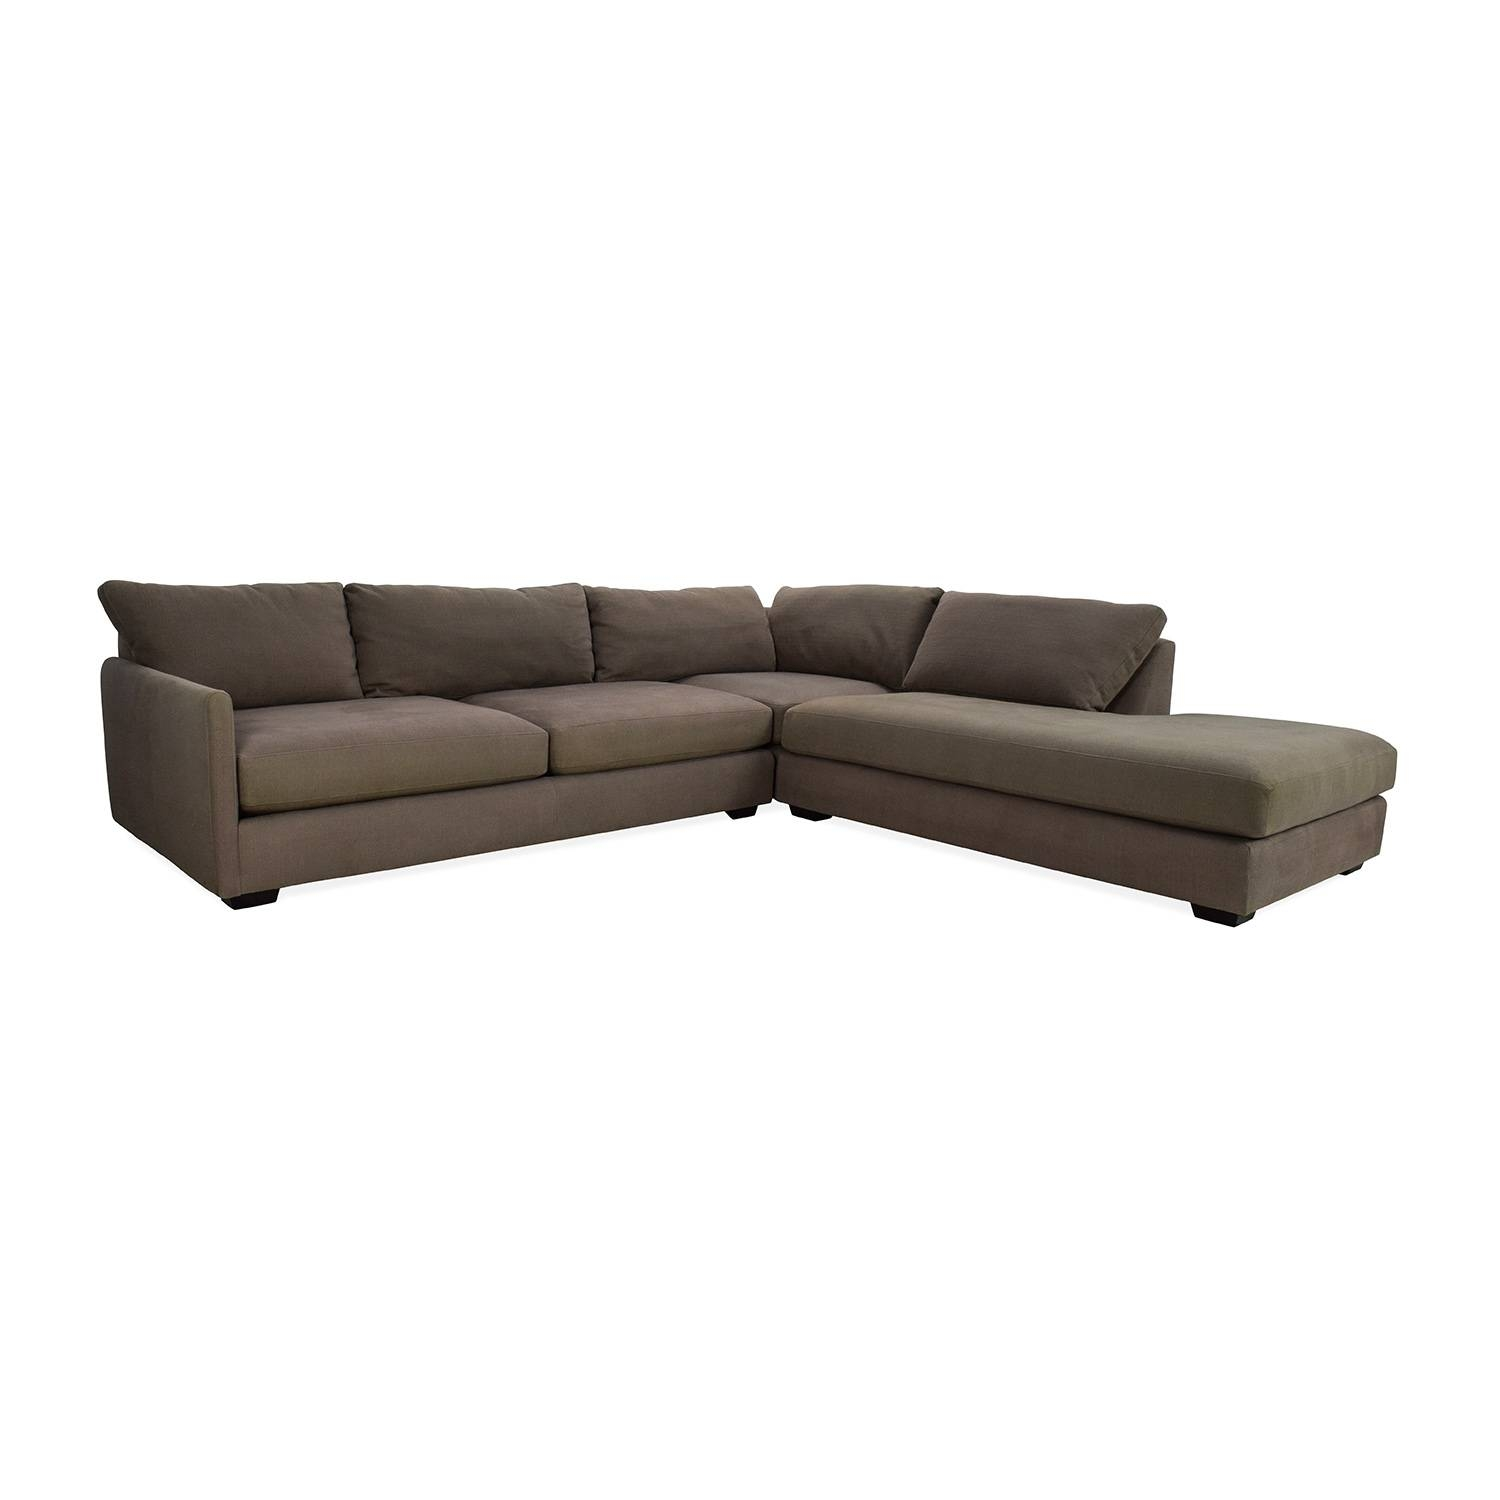 82% Off - Crate And Barrel Crate & Barrel Domino Sectional Sofa throughout Crate And Barrel Sectional Sofas (Image 6 of 30)